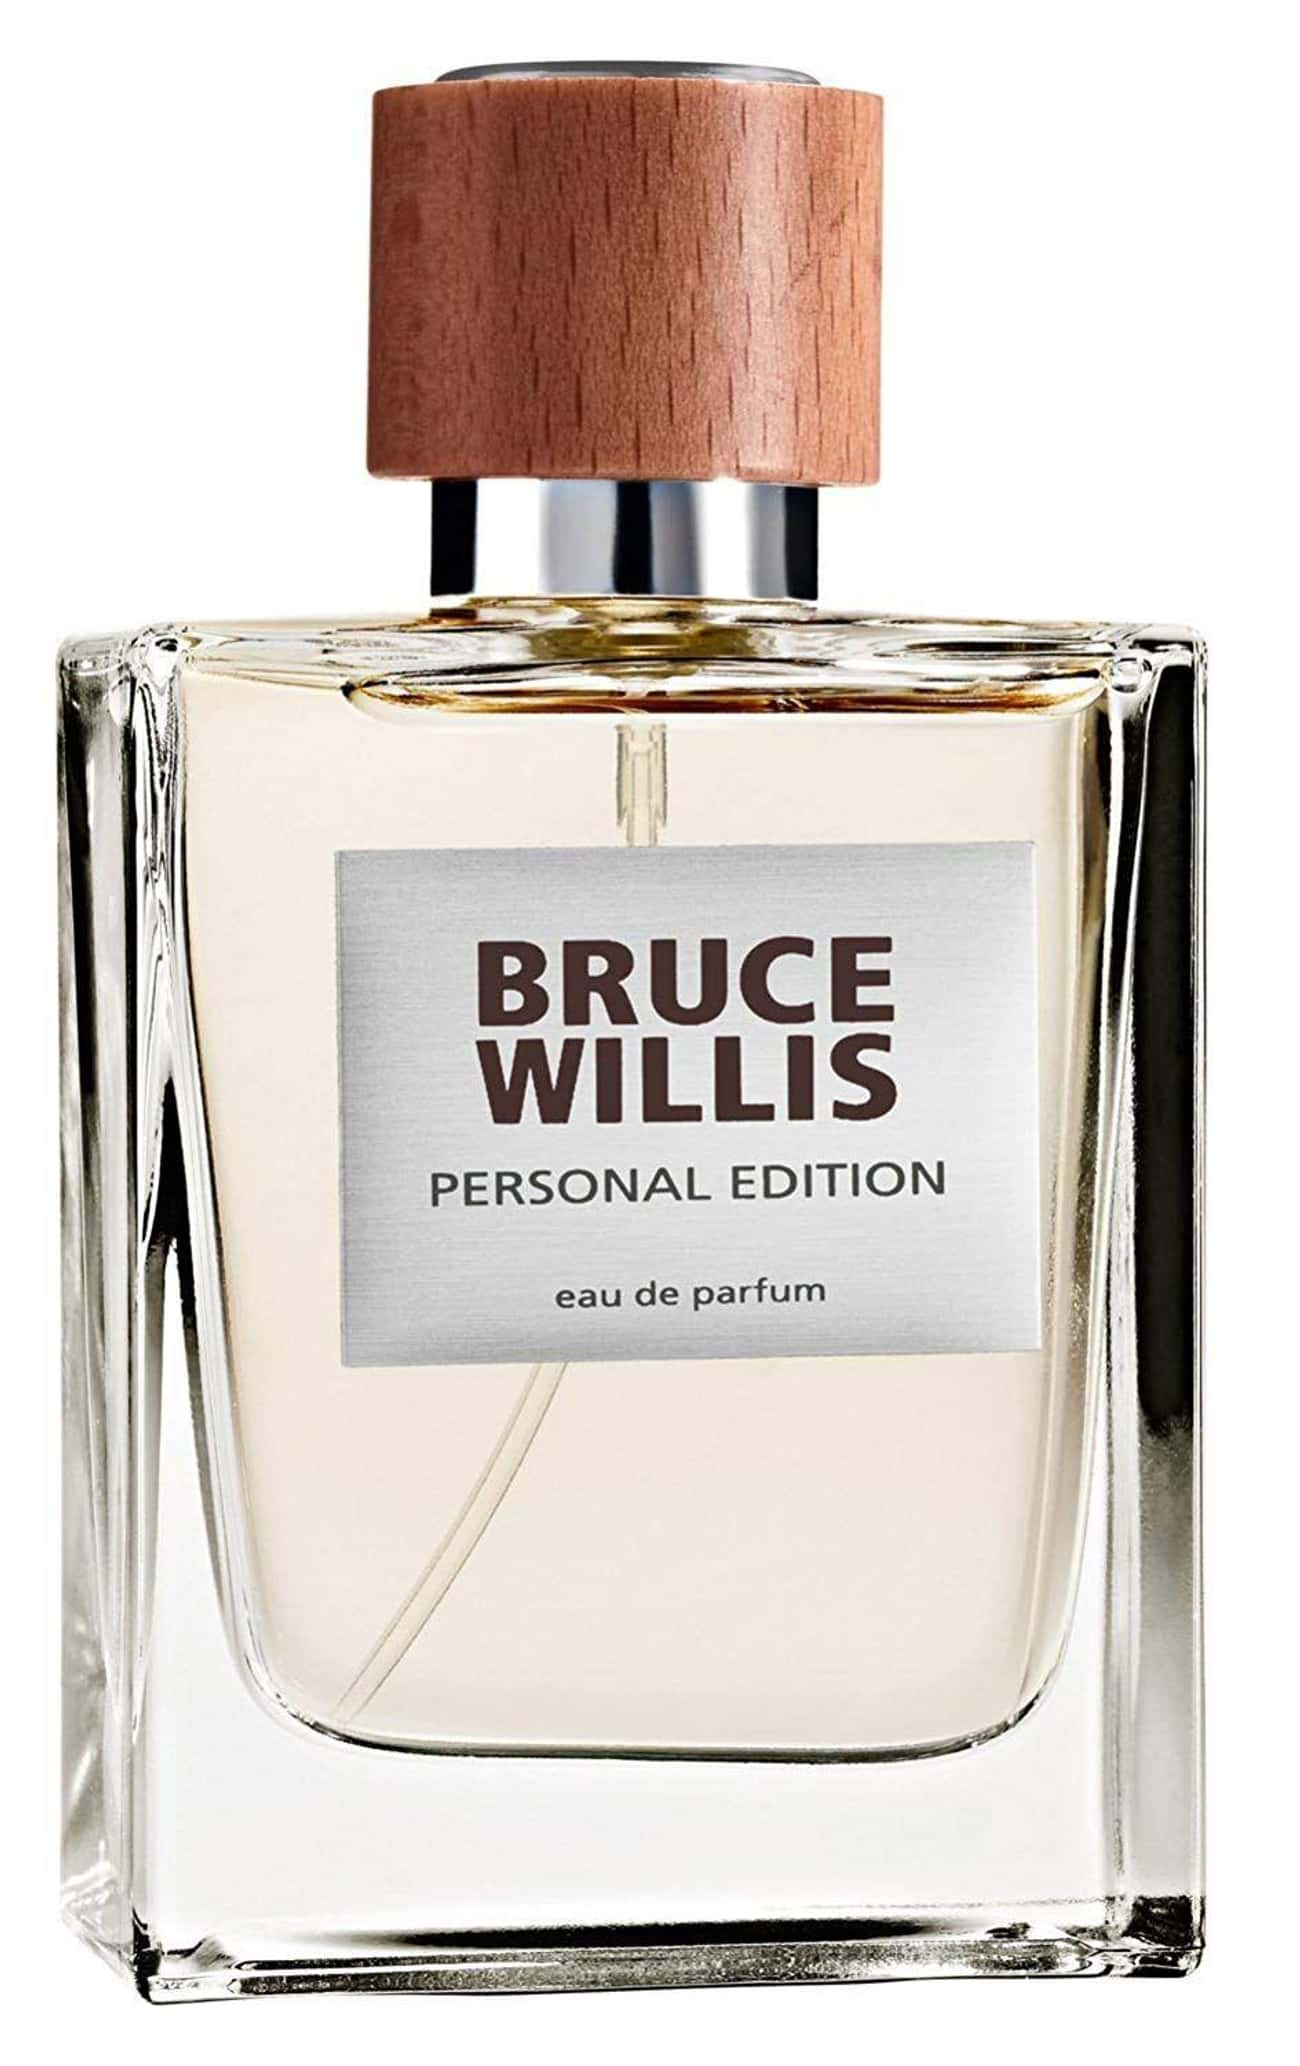 Bruce Willis - Bruce Willis Pe is listed (or ranked) 2 on the list Celebrities You Never Knew Had A Fragrance